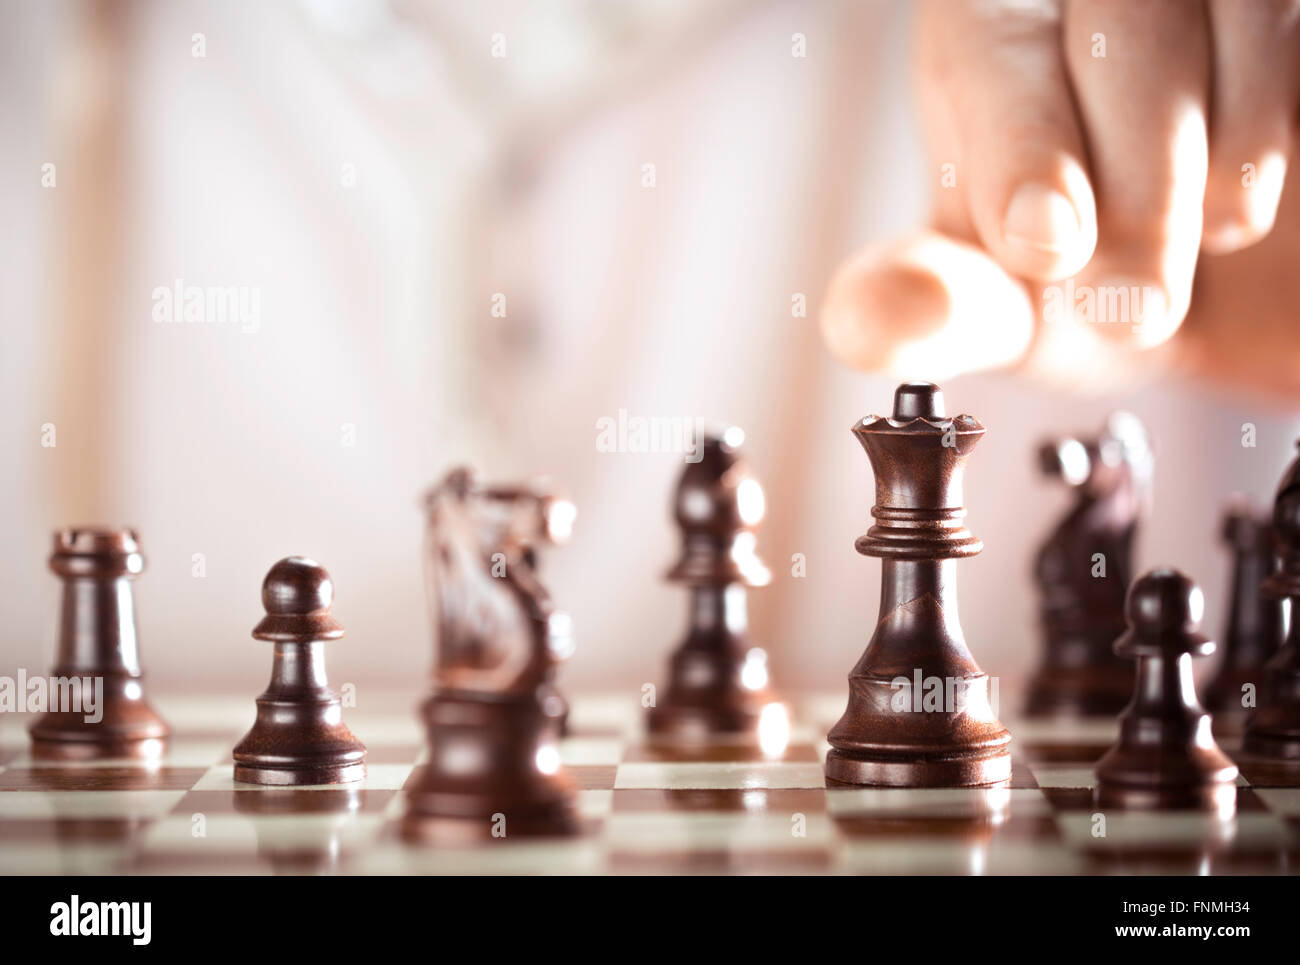 Board game, chess player hand about to play, excellence concept. - Stock Image